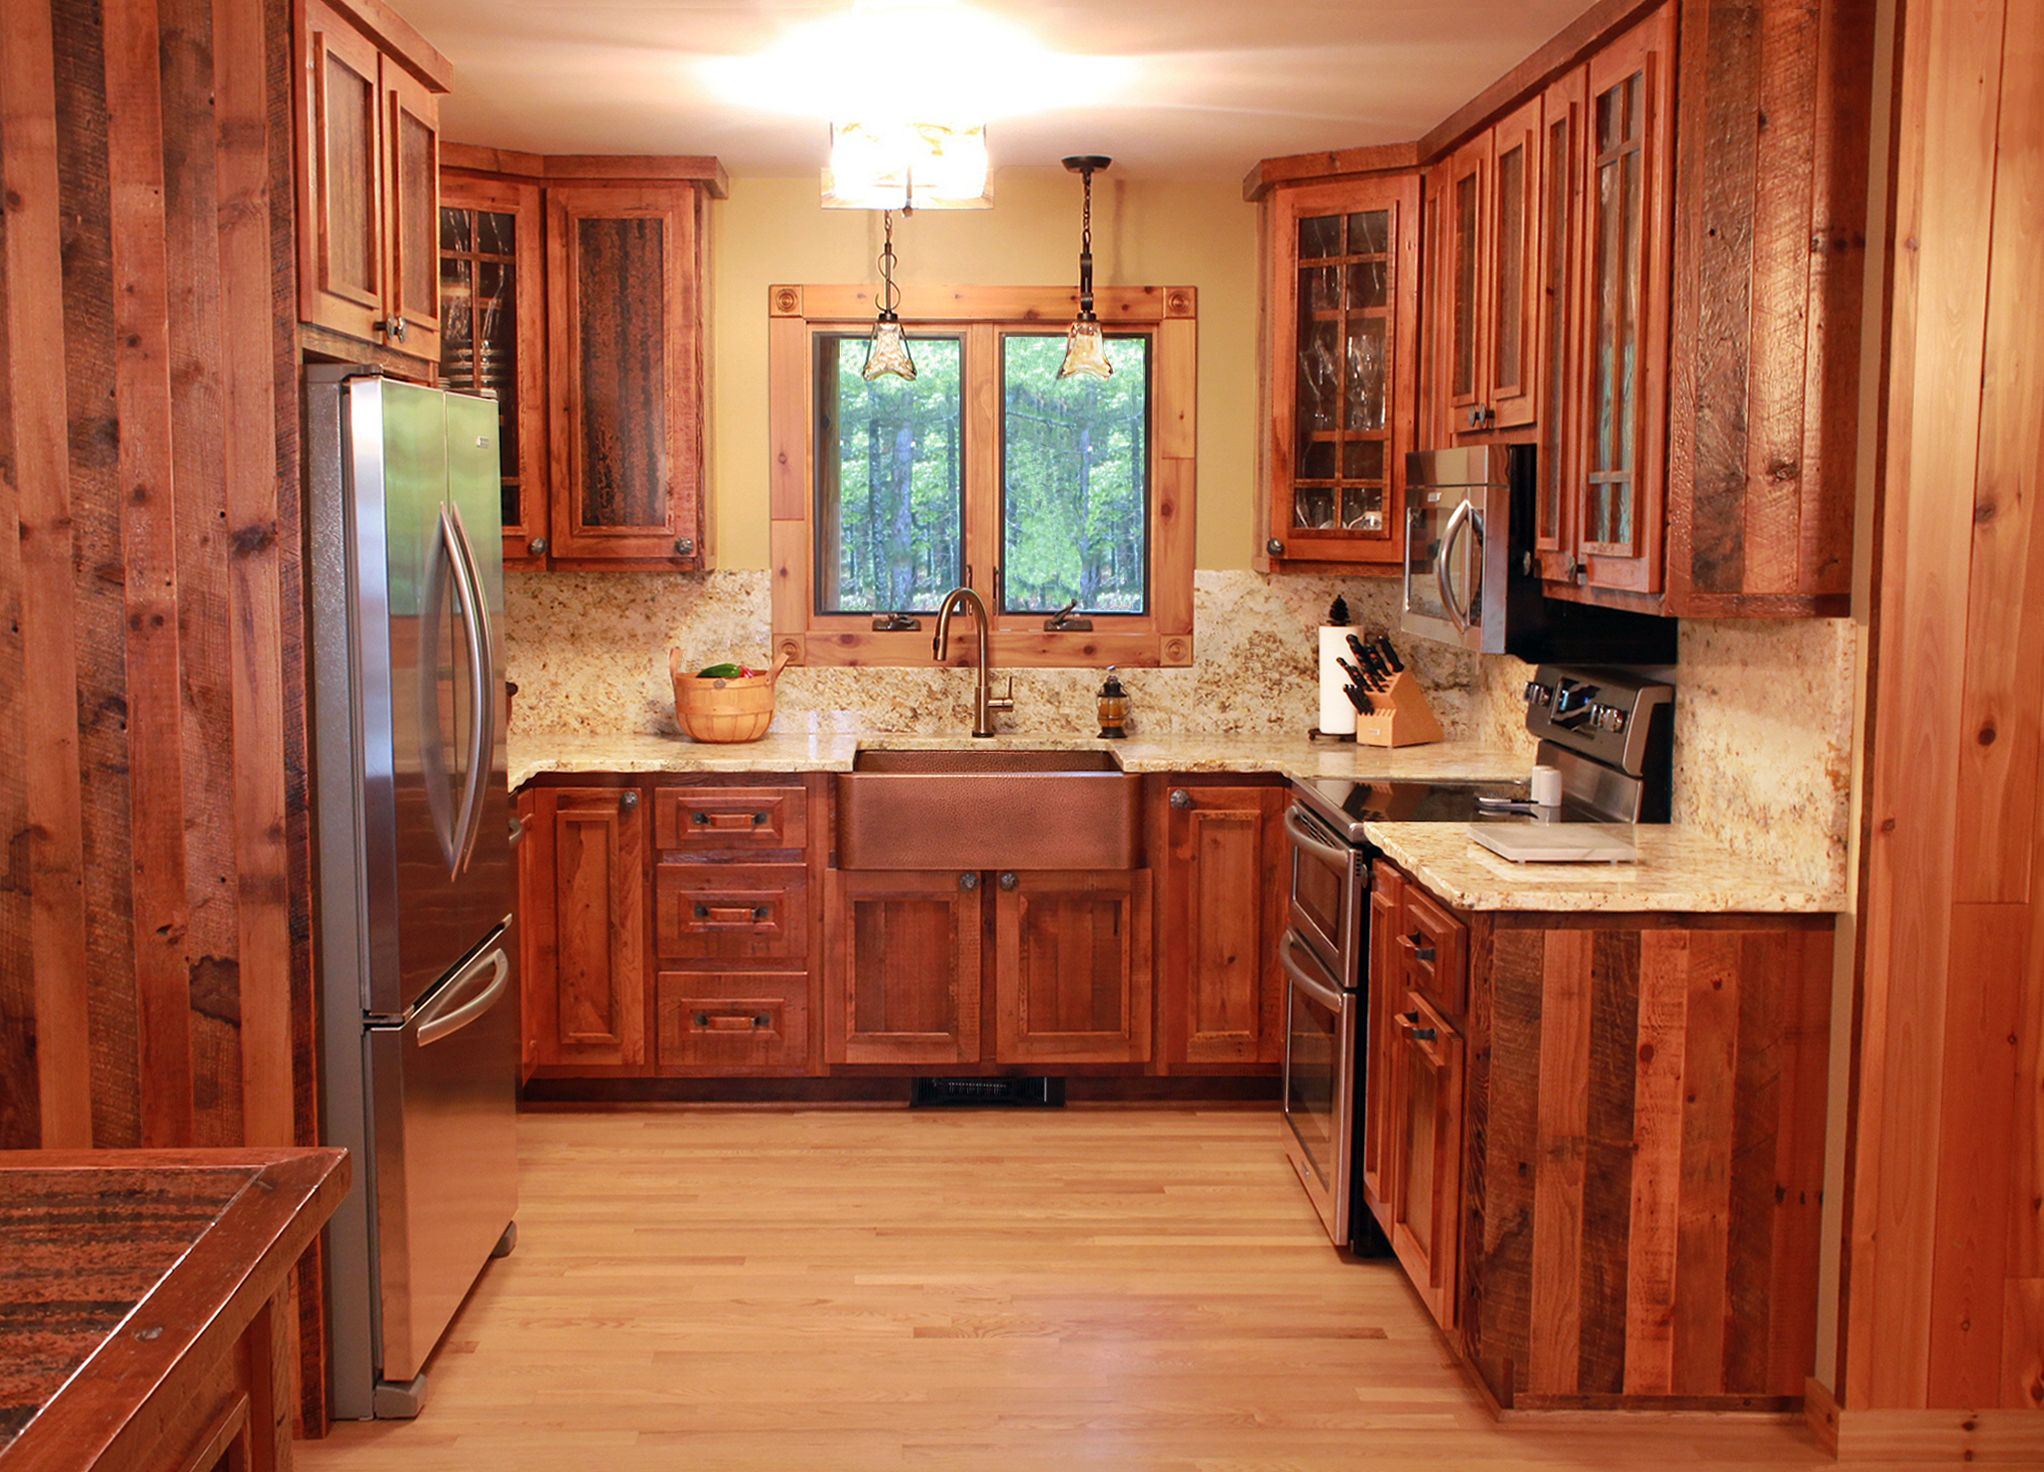 This charming rustic cabin s kitchen is made from 100 year